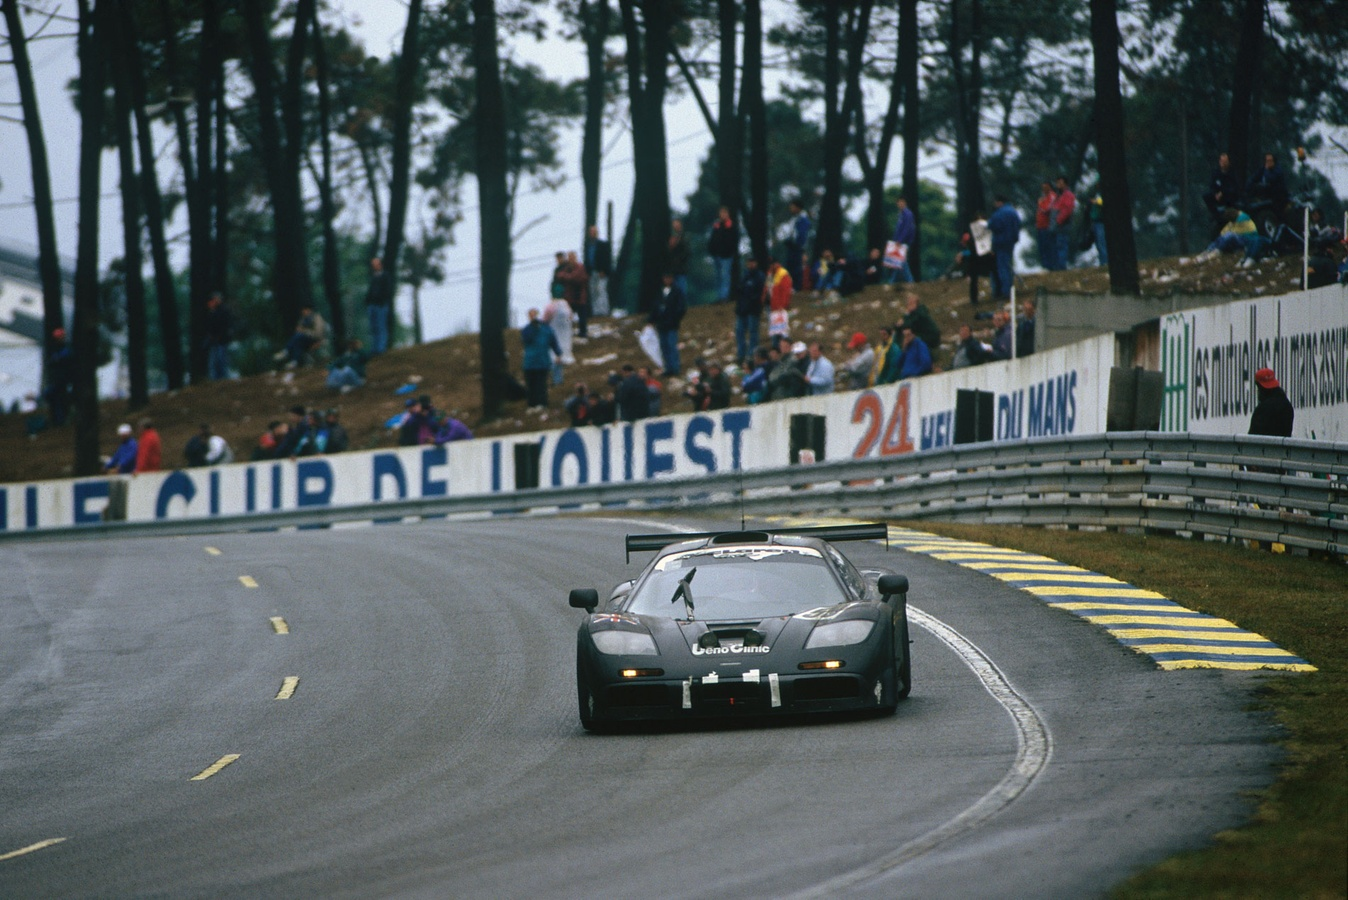 mclaren formula 1 - mclaren's first le mans victory: 20 years on